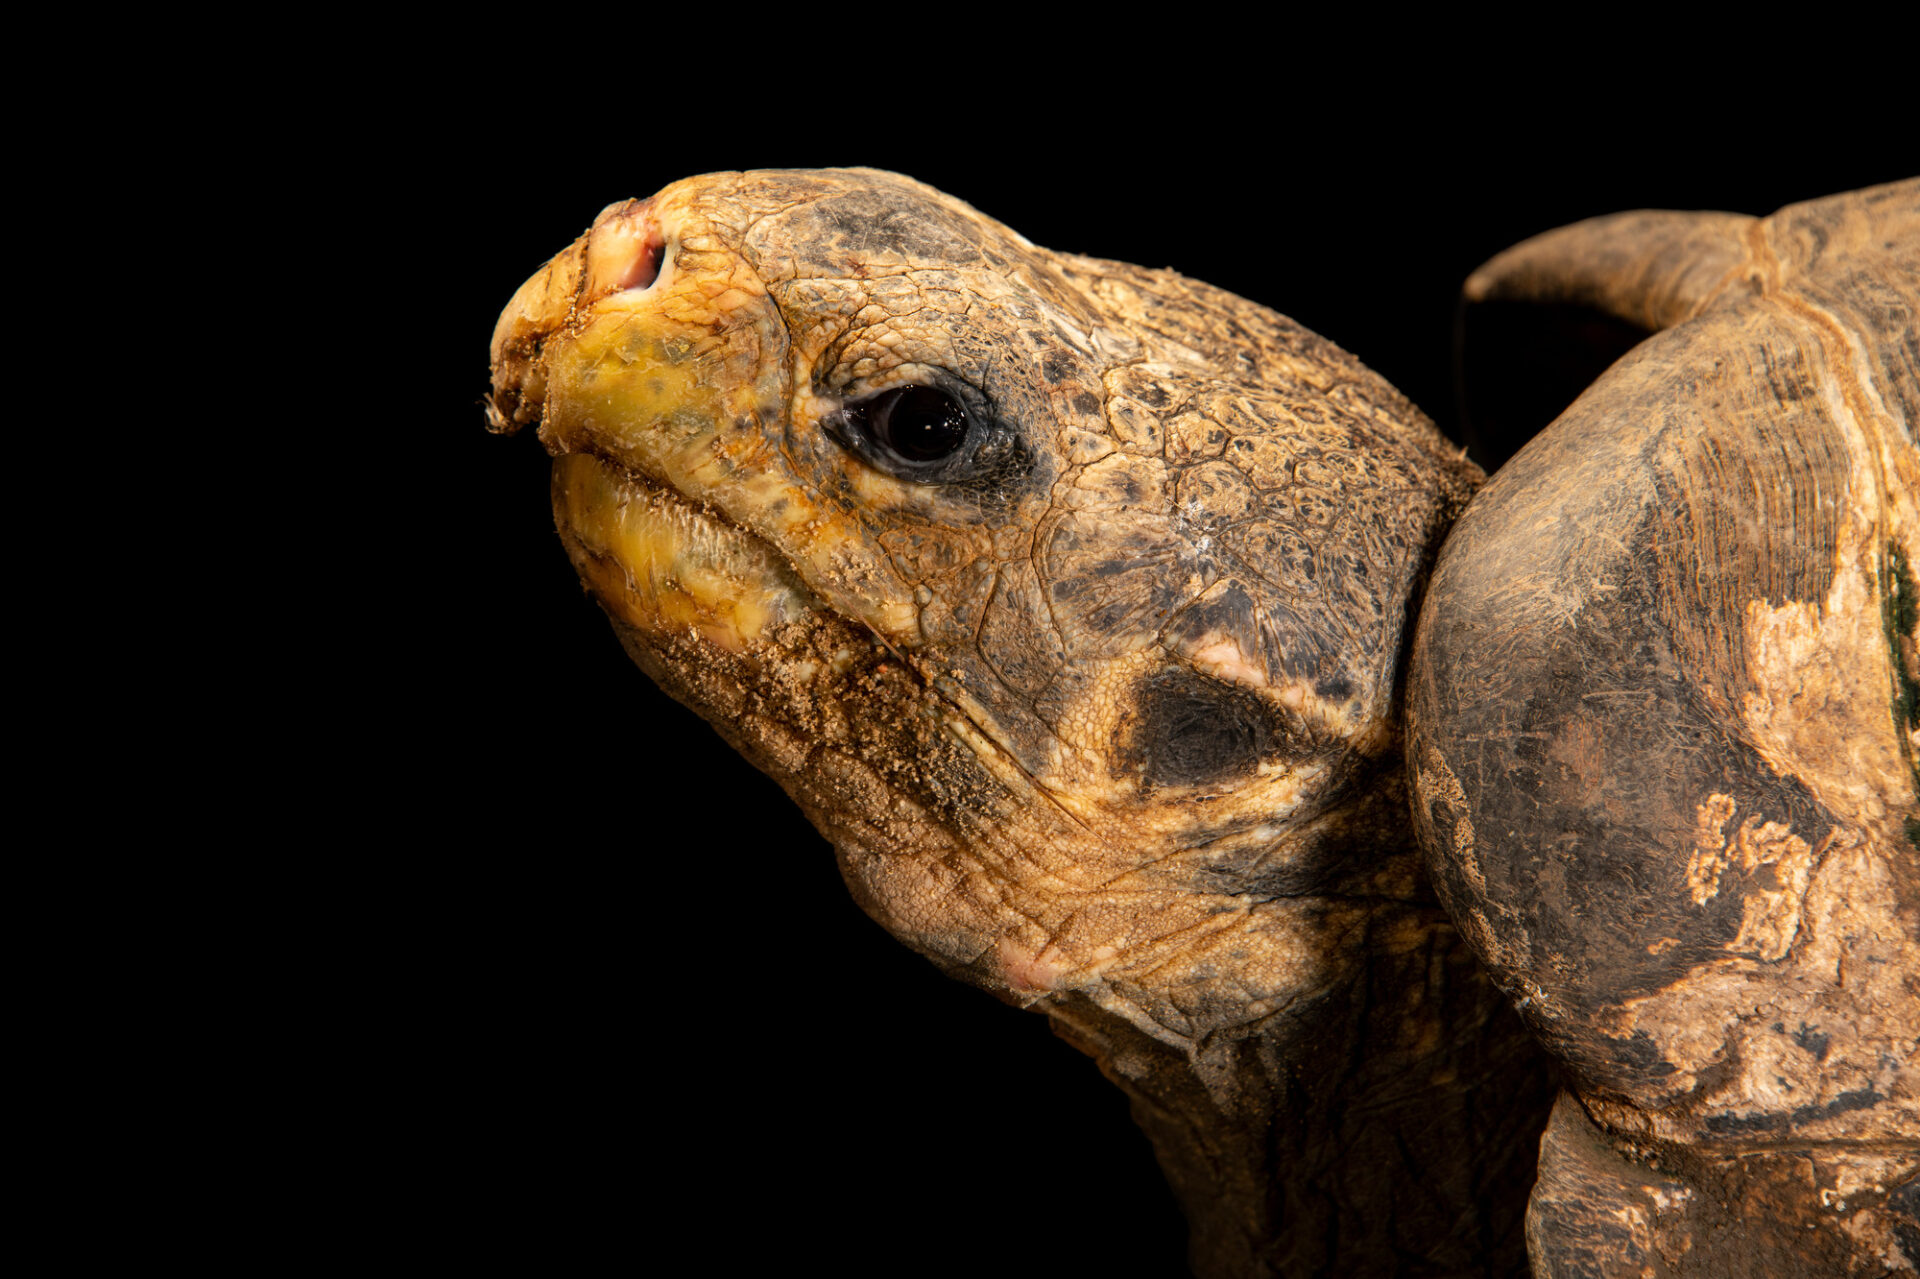 Photo: A Duncan Island giant tortoise (Chelonoidis duncanensis) at the Prague Zoo.